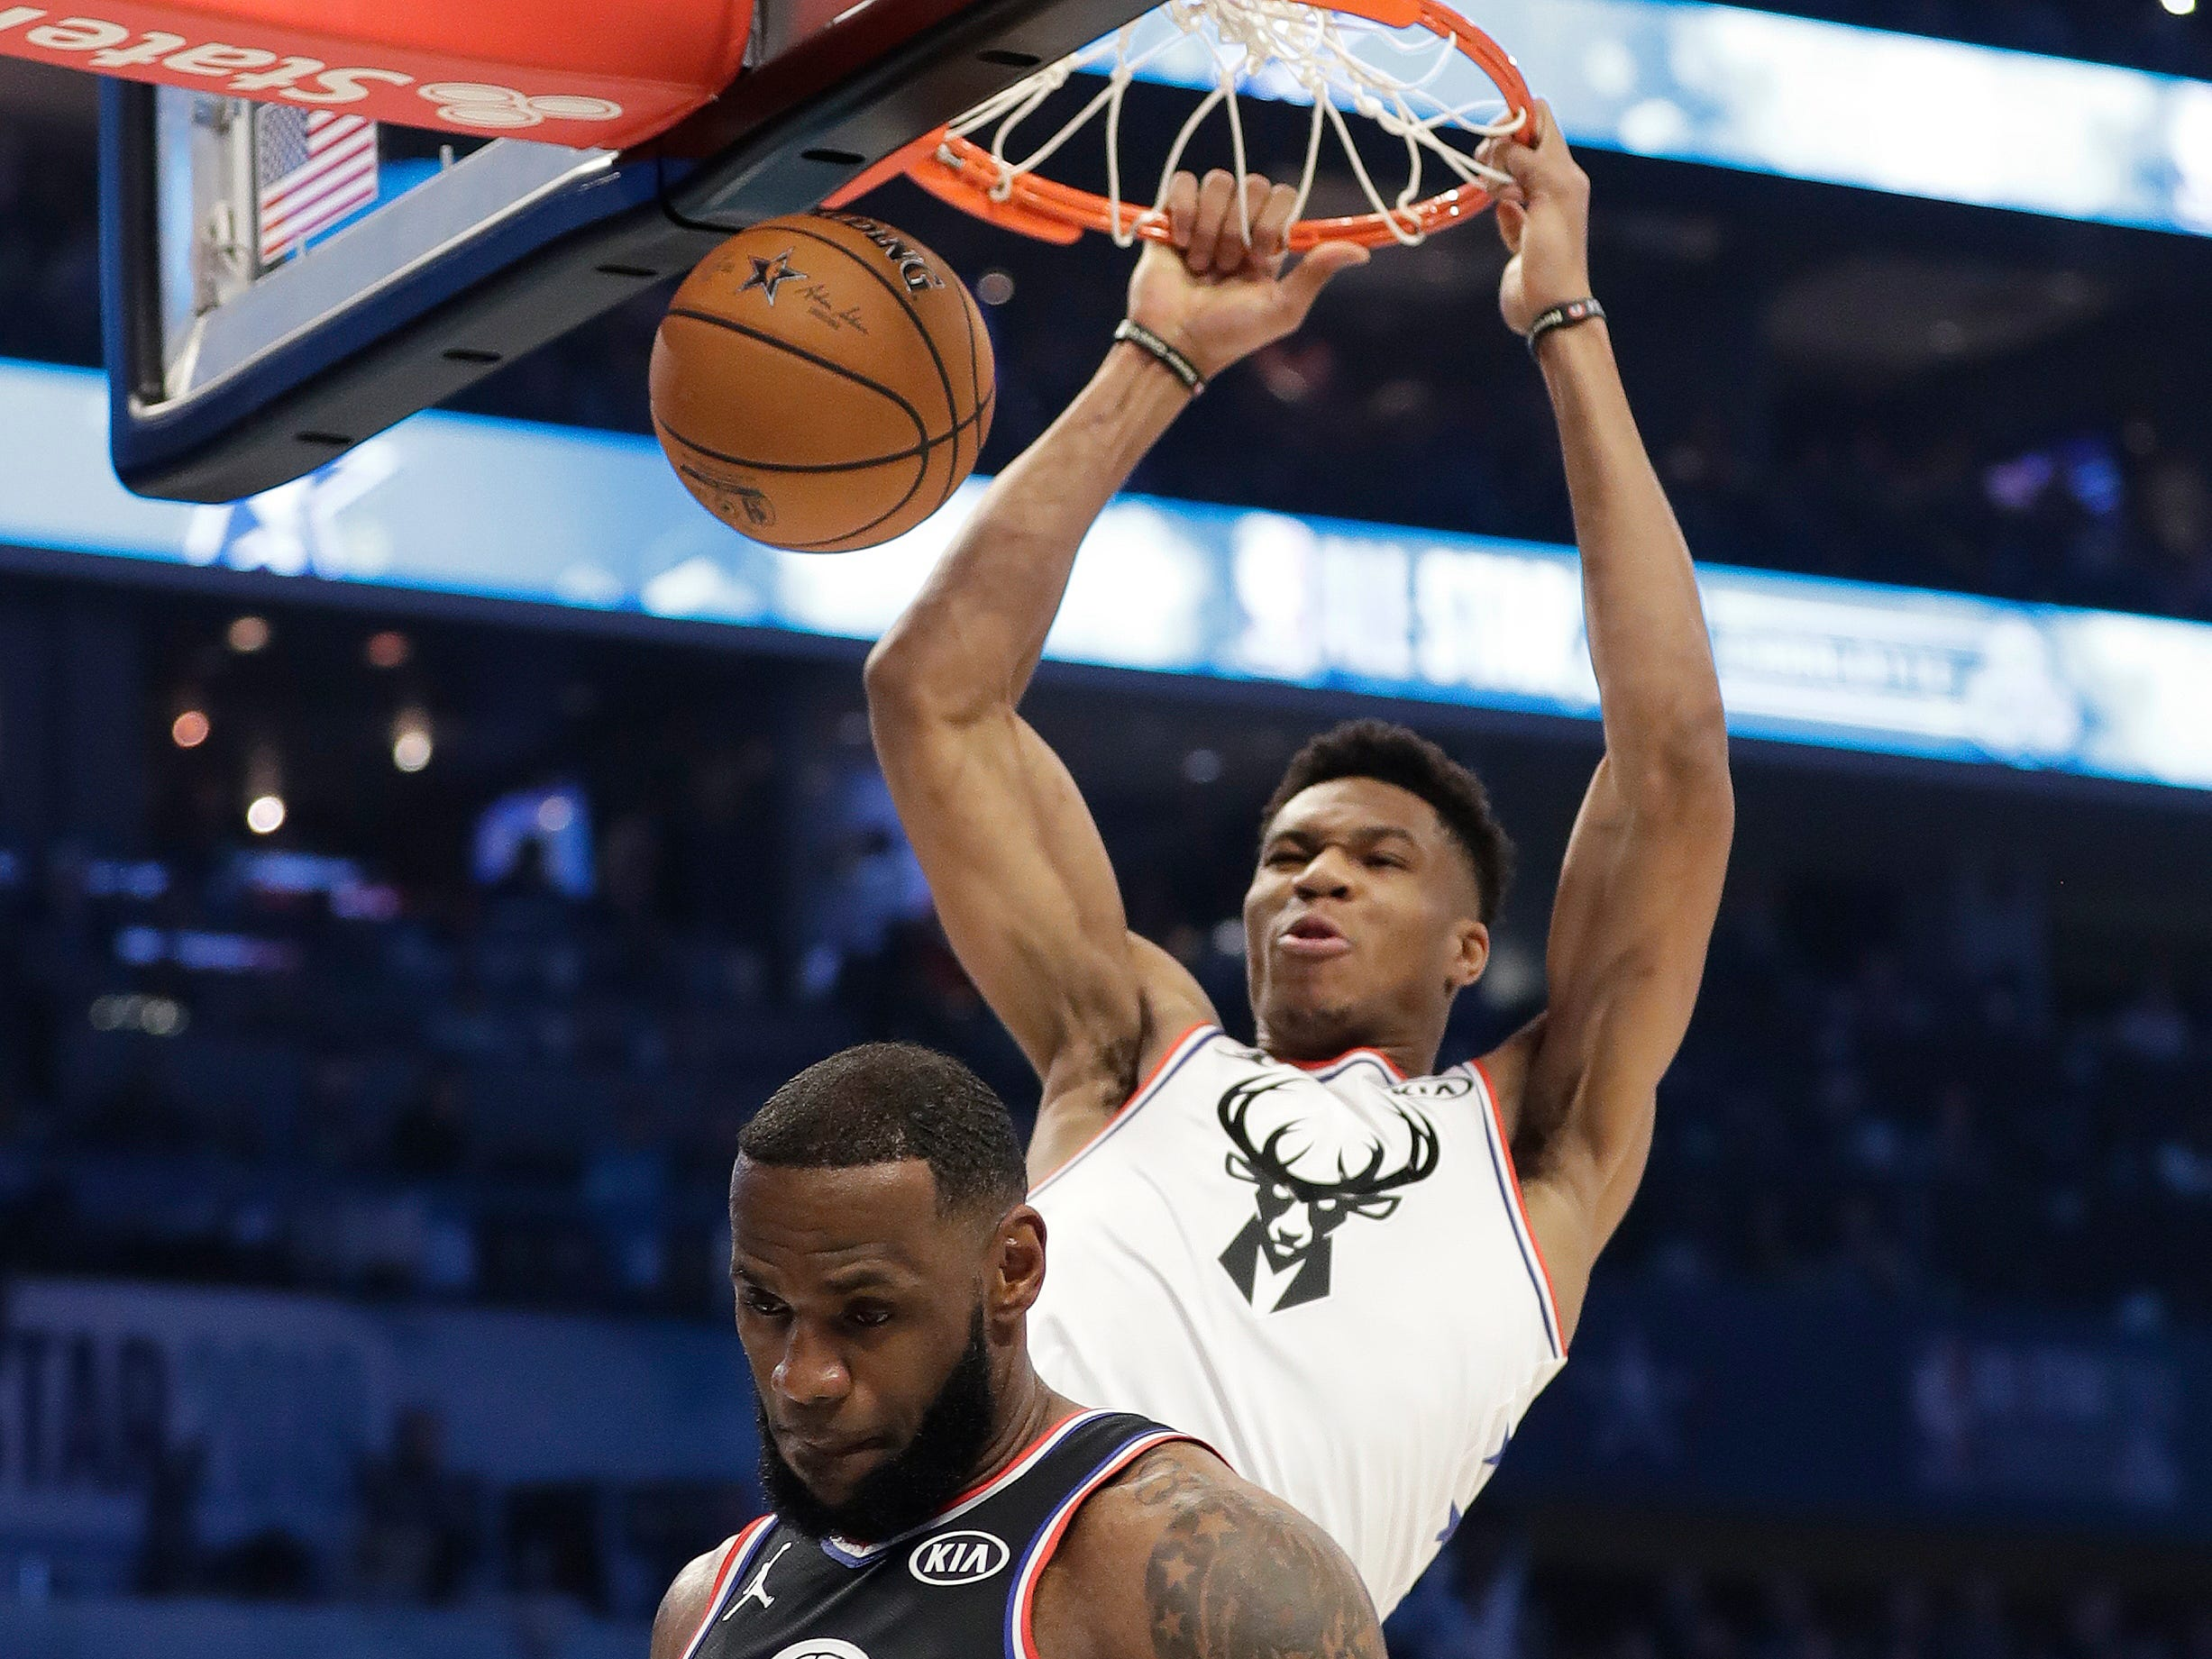 Giannis Antetokounmpo, of the Milwaukee Bucks, dunks the ball as LeBron James moves out of the way.